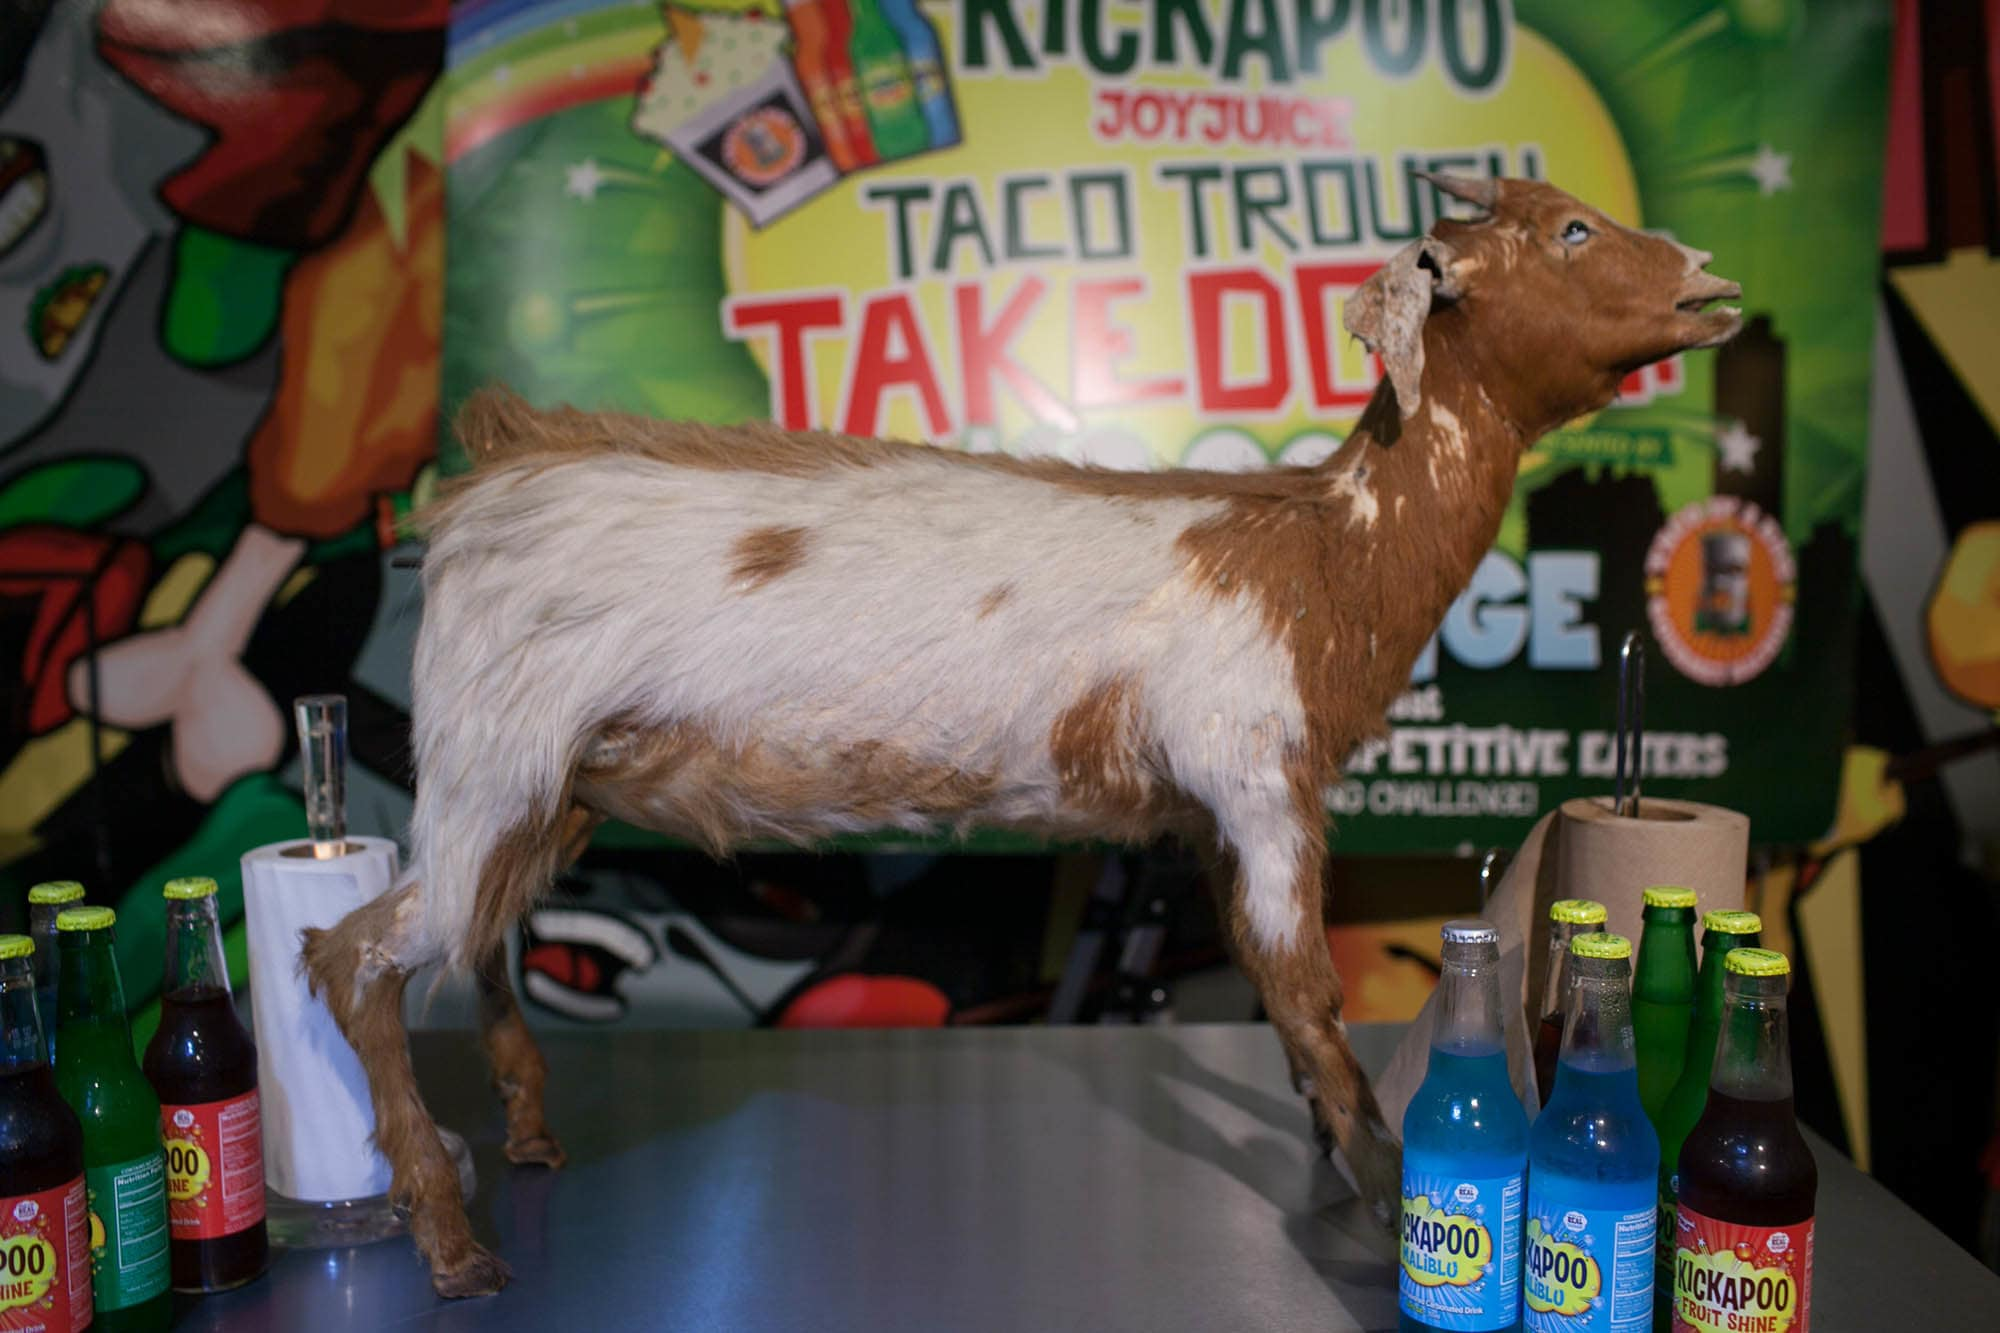 Taco in a Bag 40-pound Goat Eating Contest